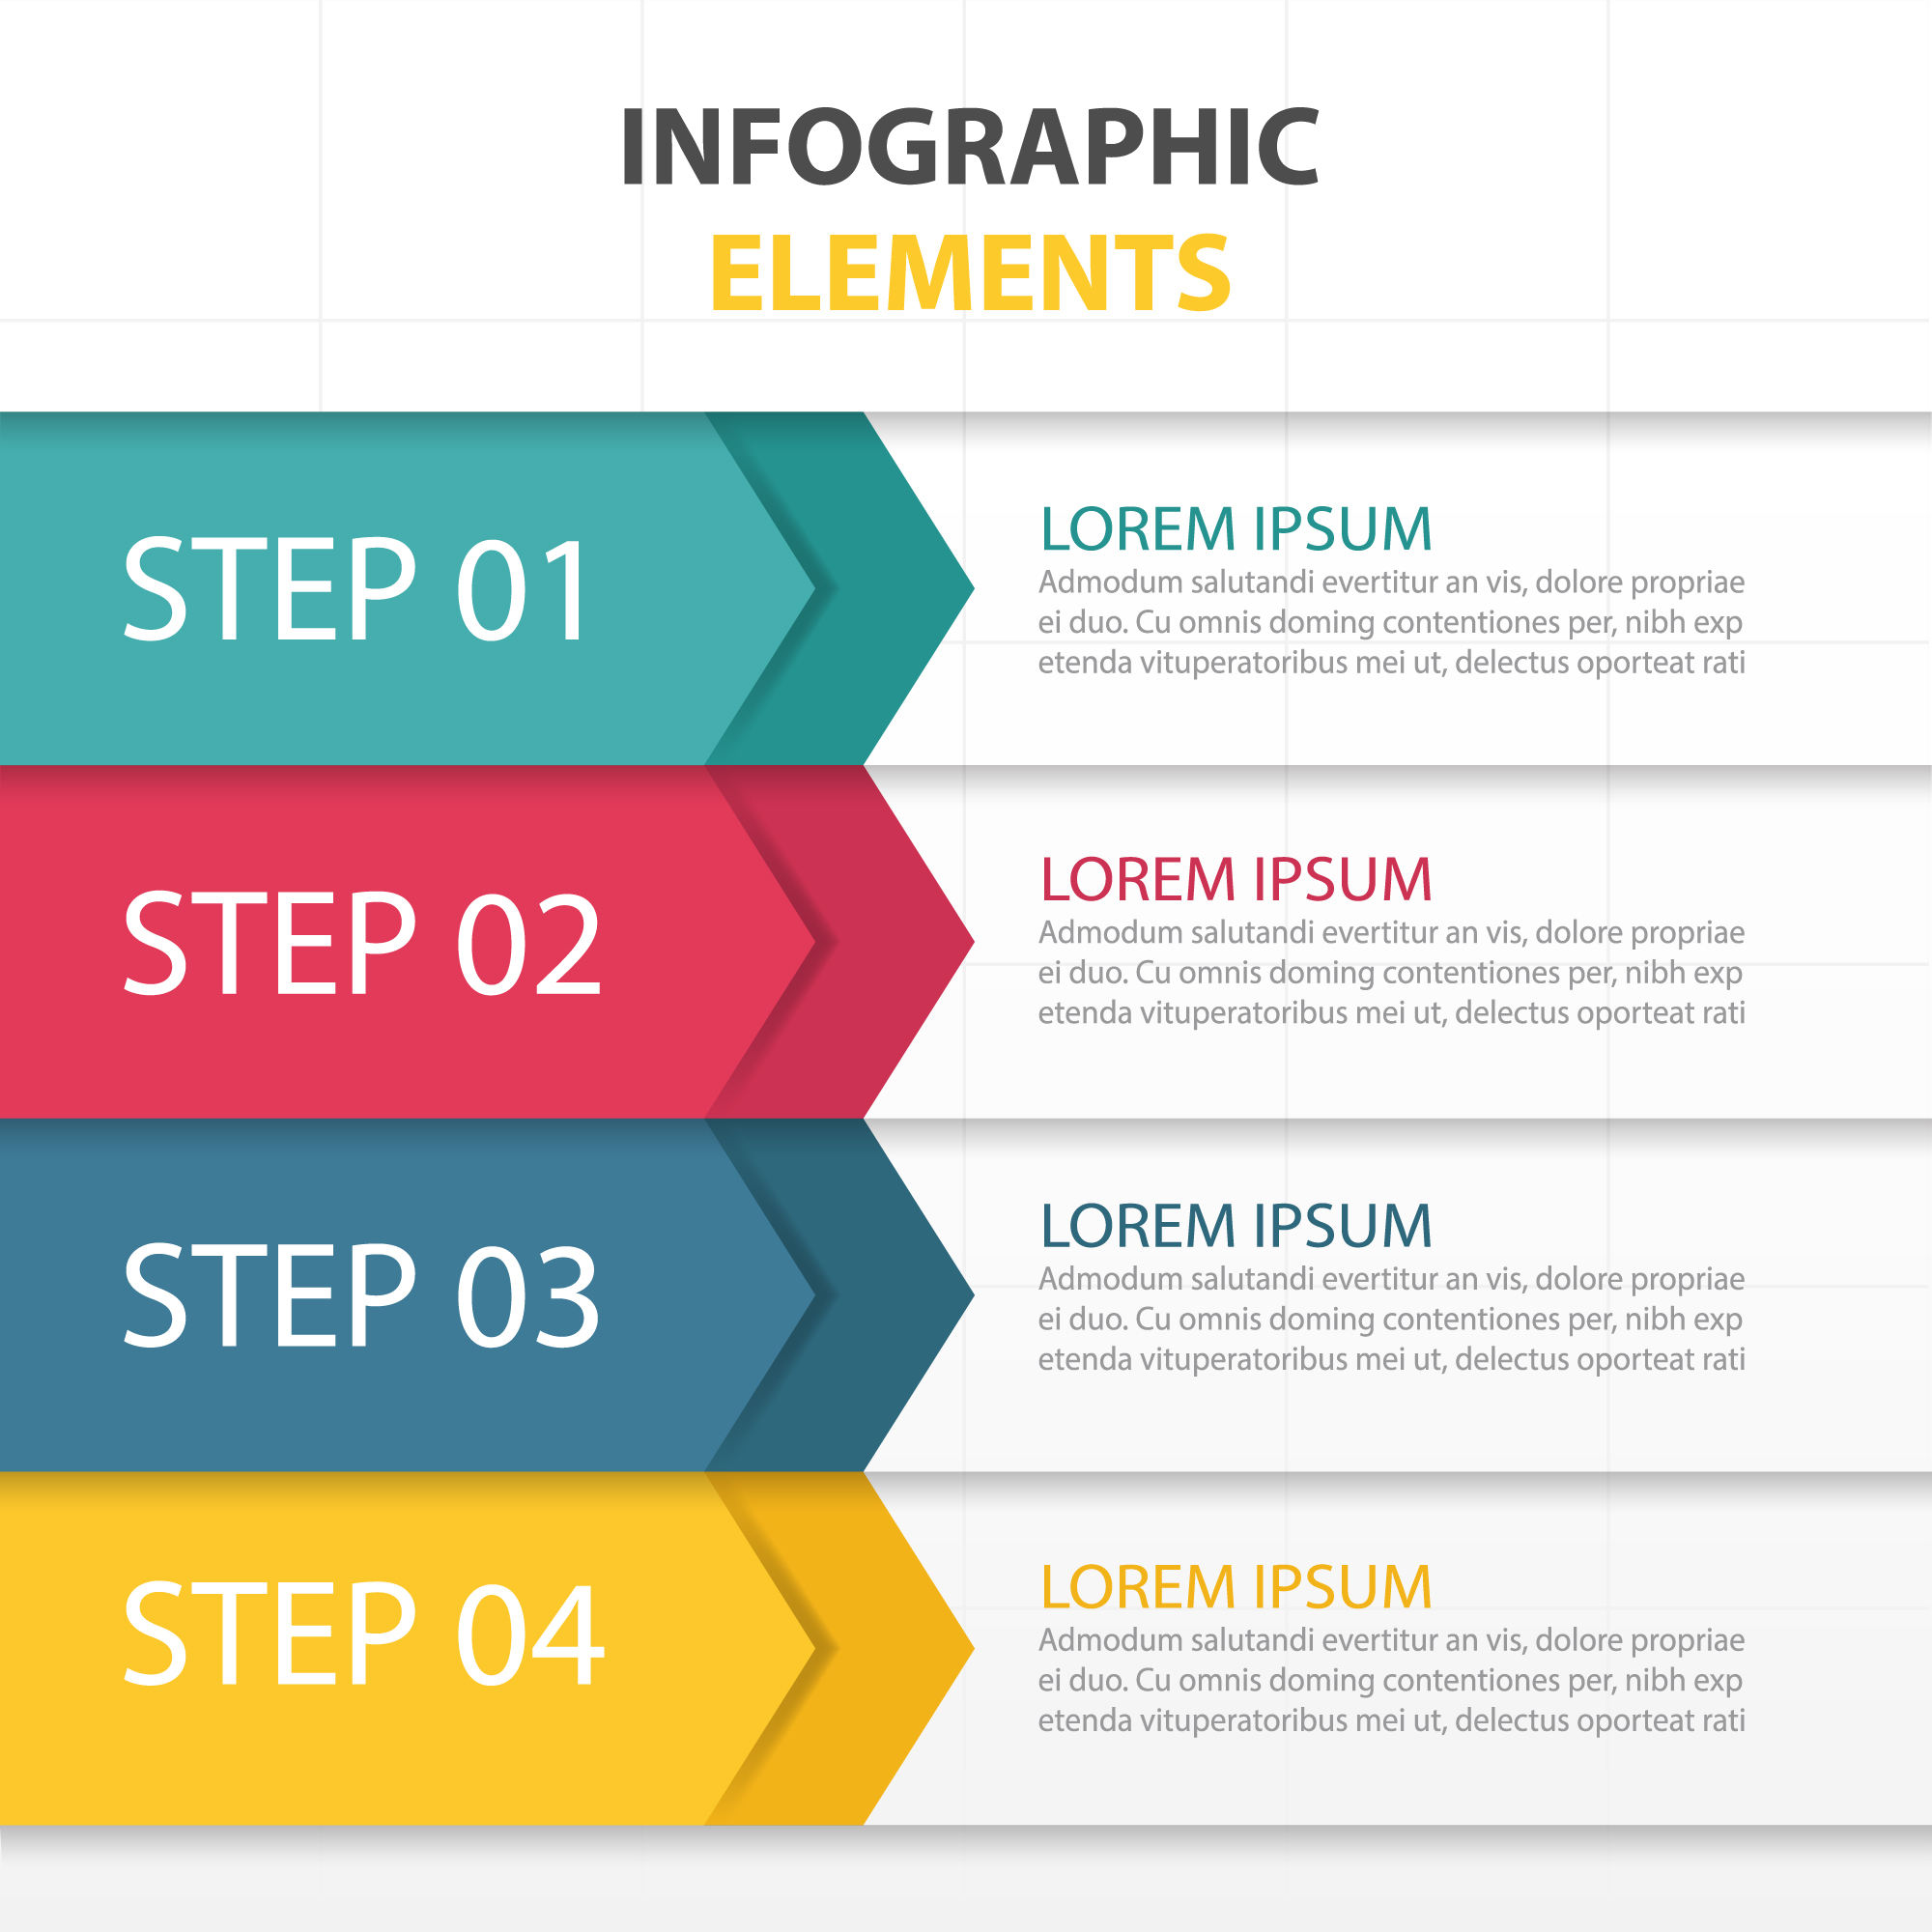 Template with infographic elements